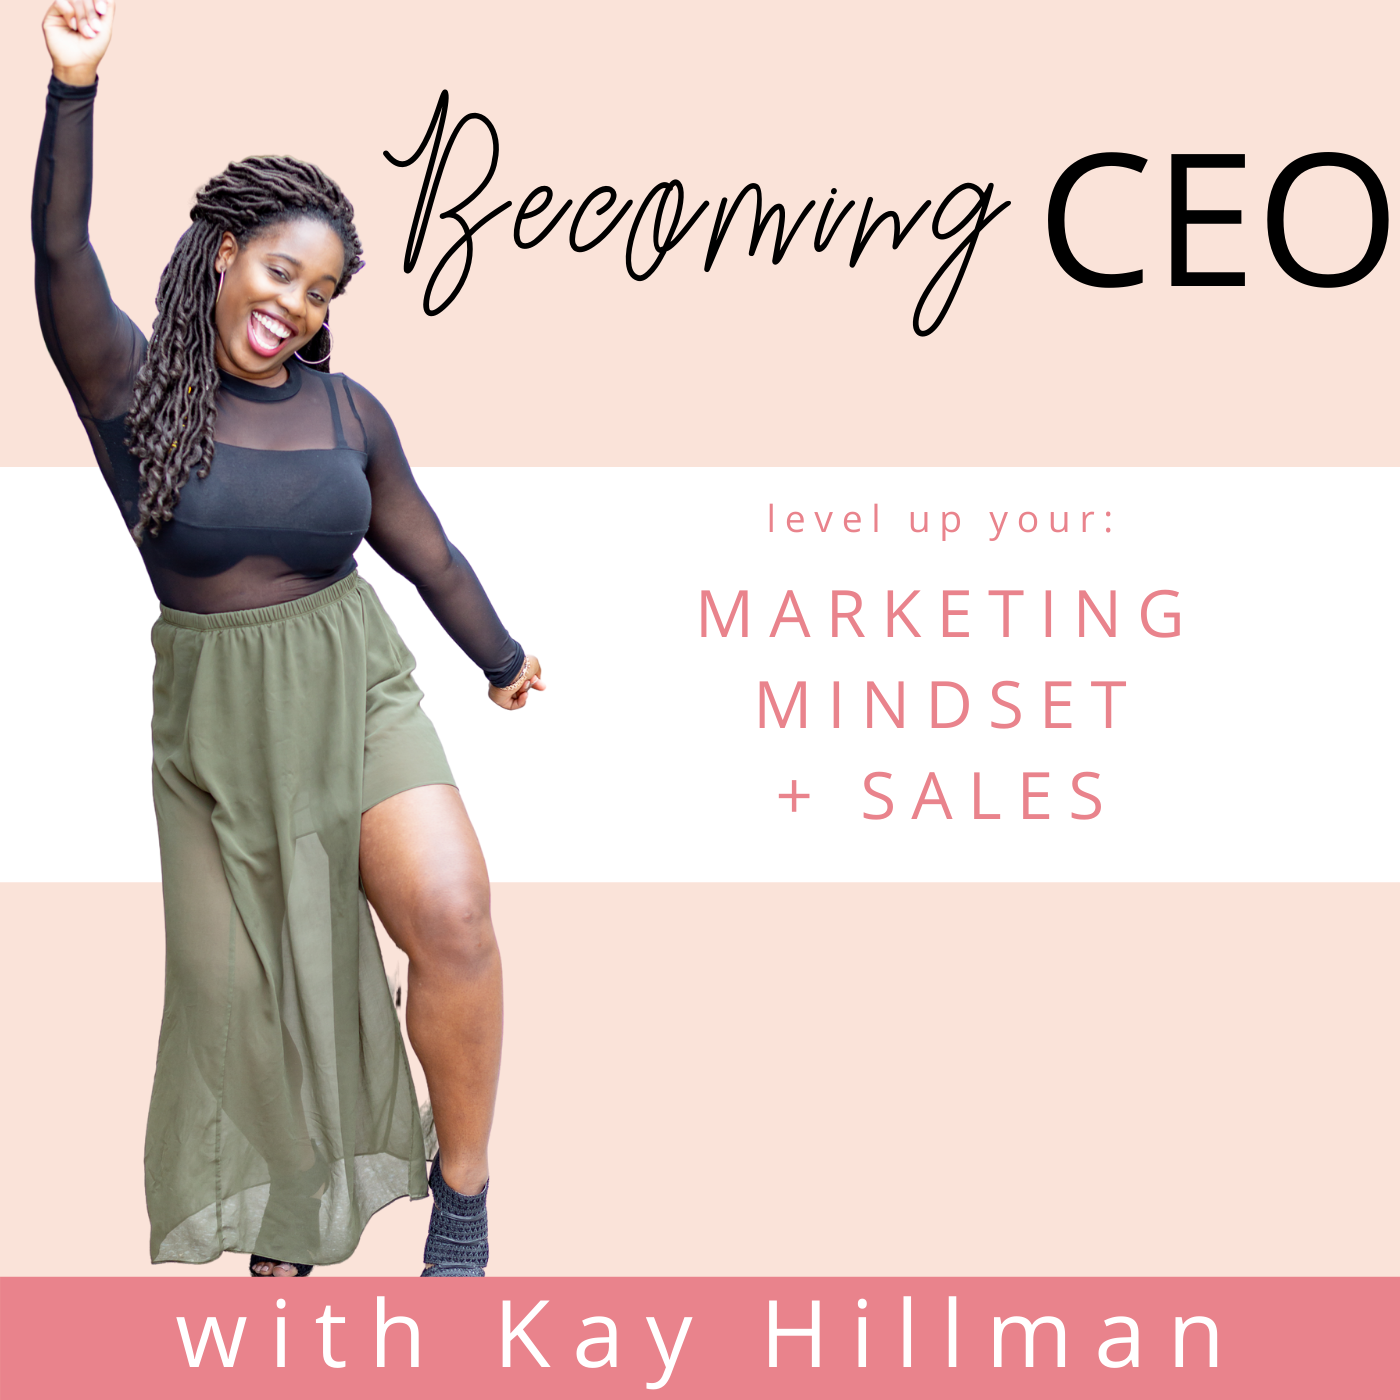 BecomingCEO - Online Marketing, Sales Strategy and Mindset Tips for Christian Female Entrepreneurs! show art